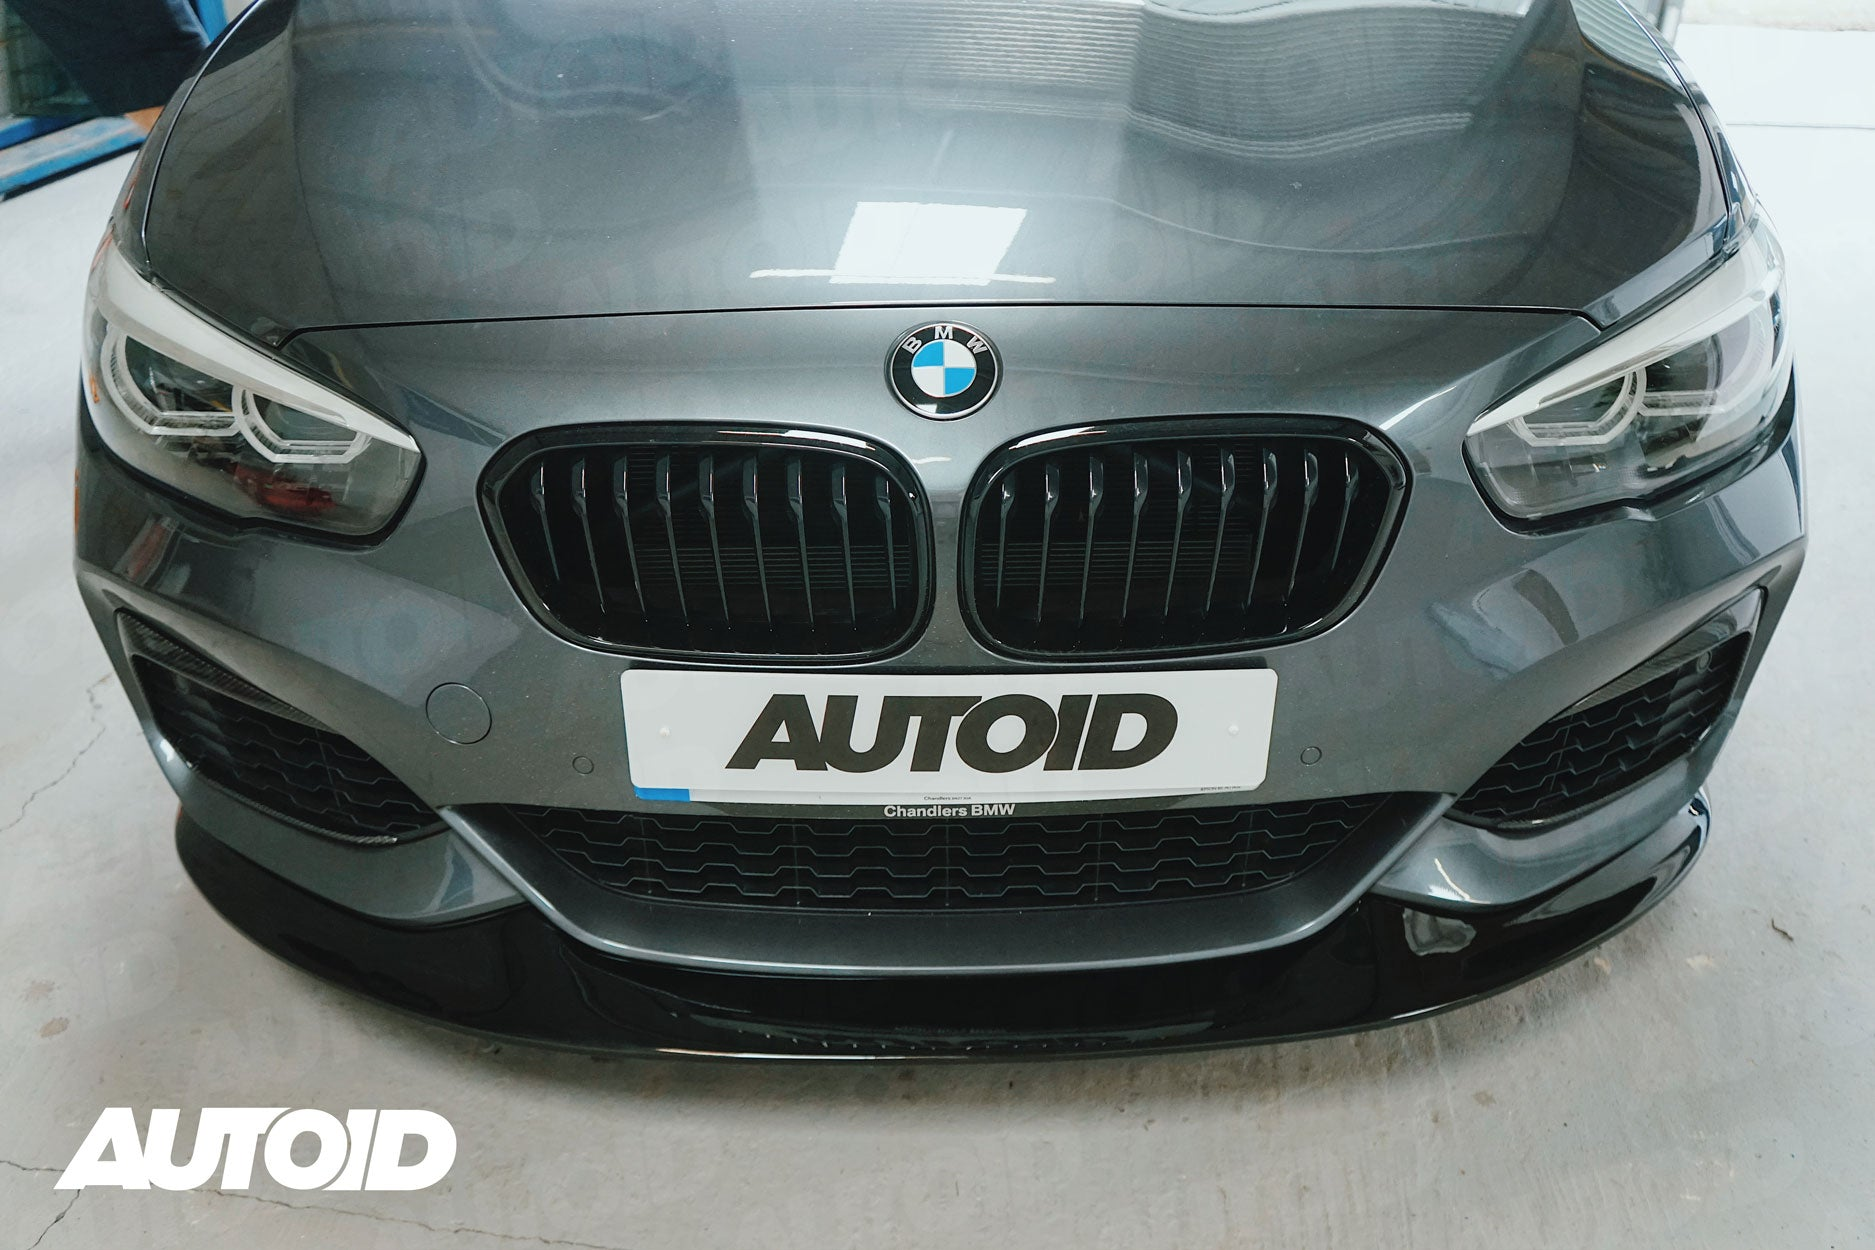 AUTOID Gloss Black Double Slat Kidney Grilles for BMW 1 Series (LCI, 2015+)